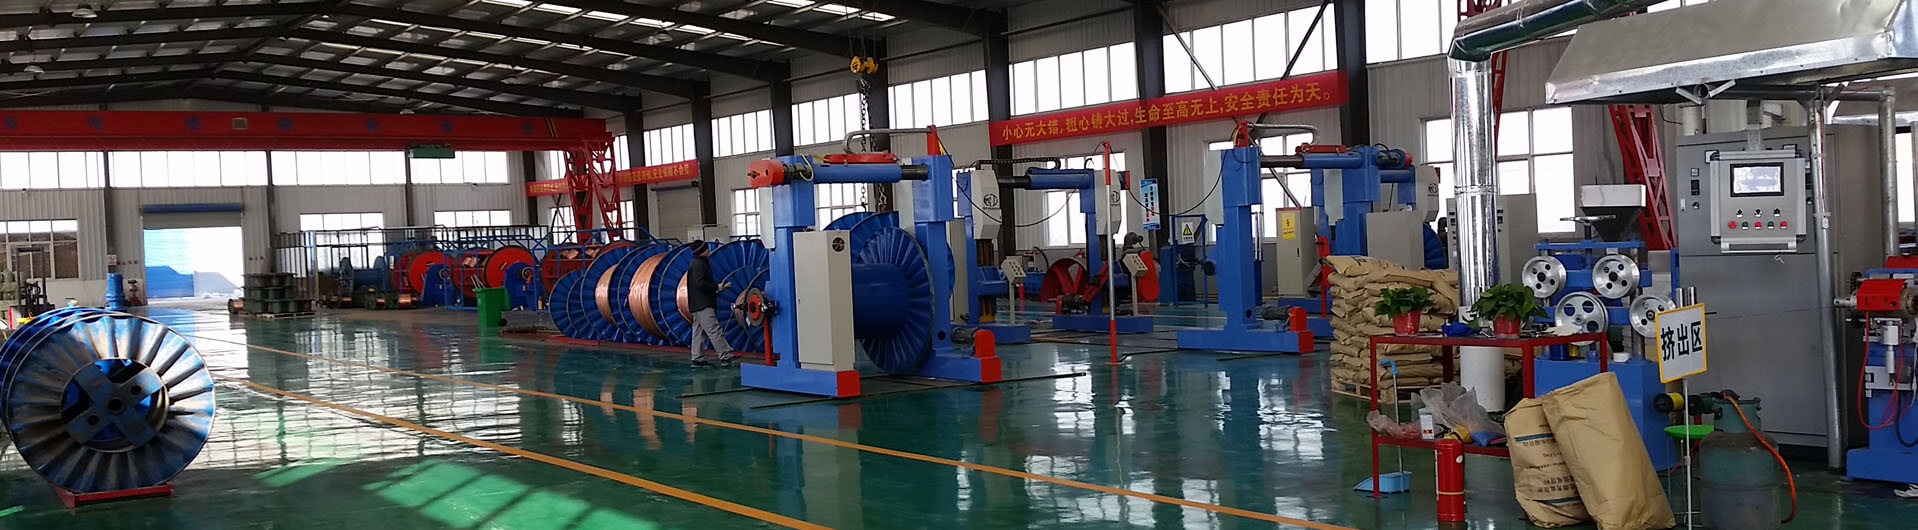 Steel Armoured Cable Price List Sale Hdc Underground Power Wiring How To Save Money When You Buy At Lowest